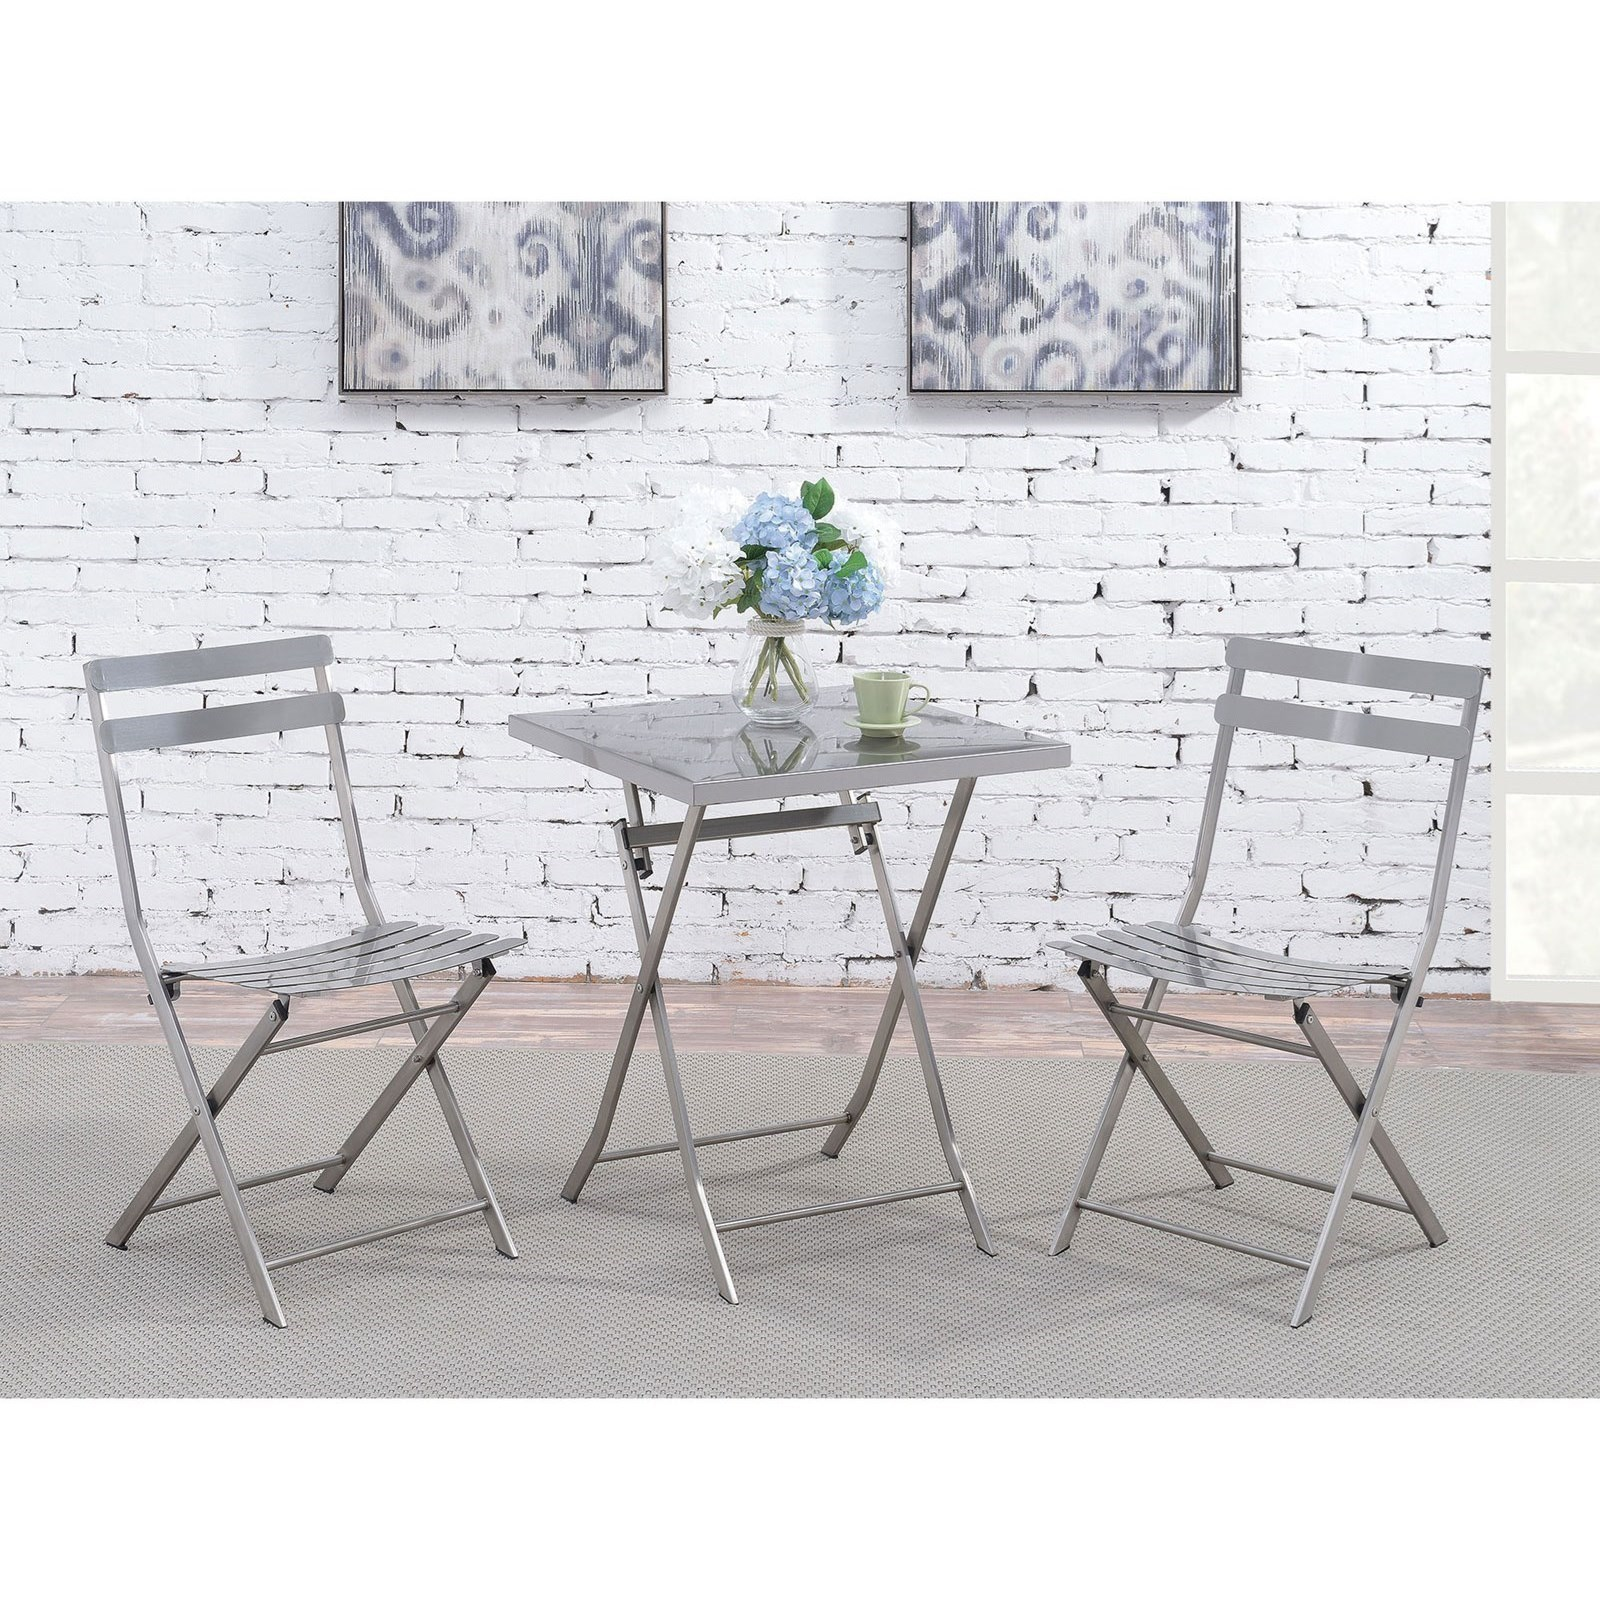 Stainless Folding Table and Chair Set